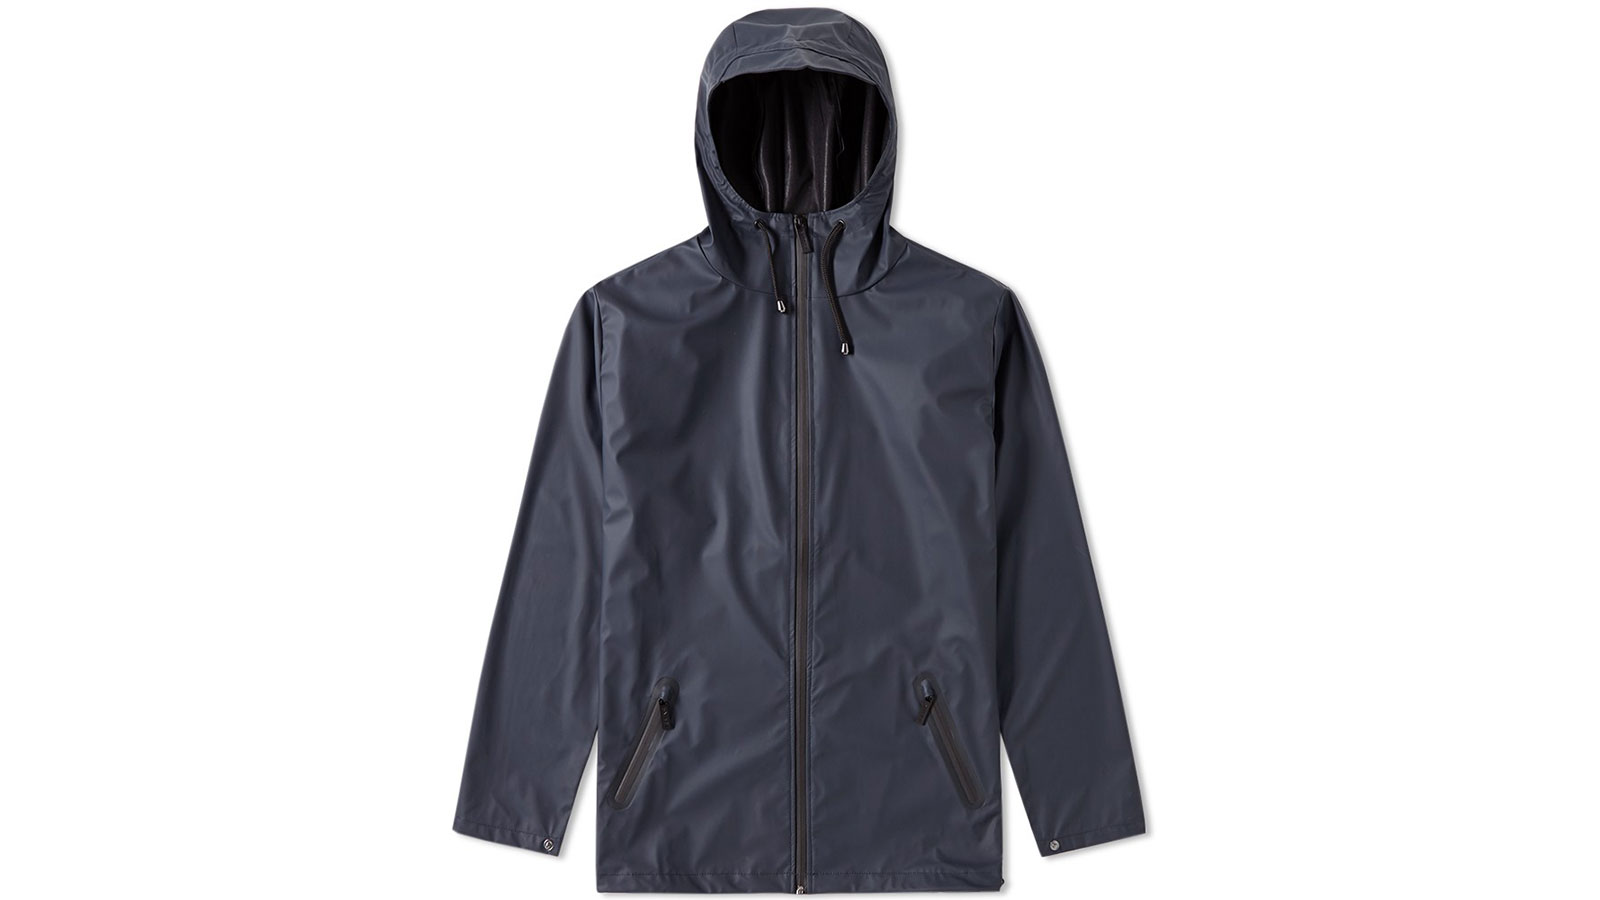 Rains Men's Windbreaker Jacket | the best men's windbreakr jackets